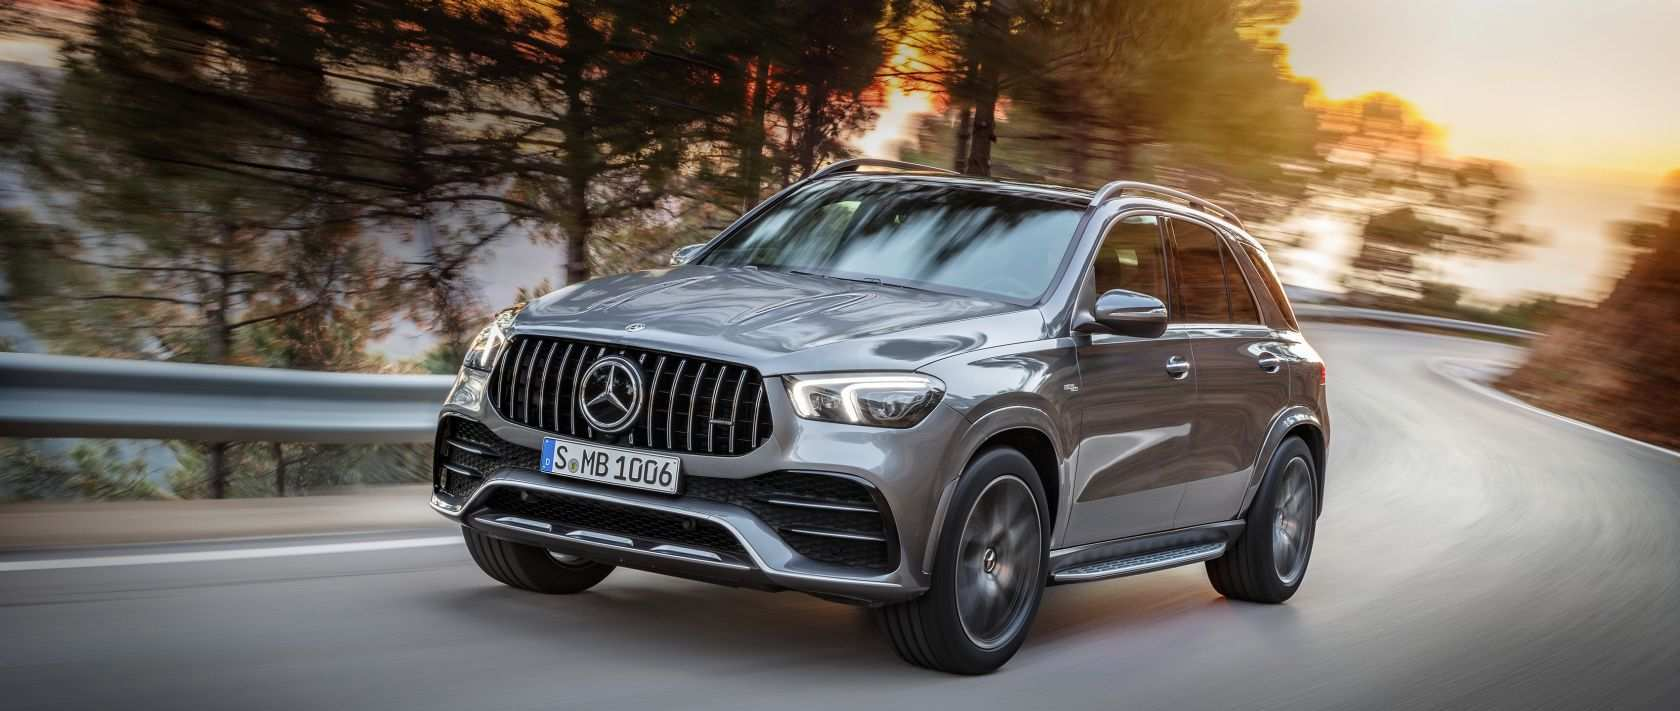 60 All New 2019 Mercedes GLE Photos